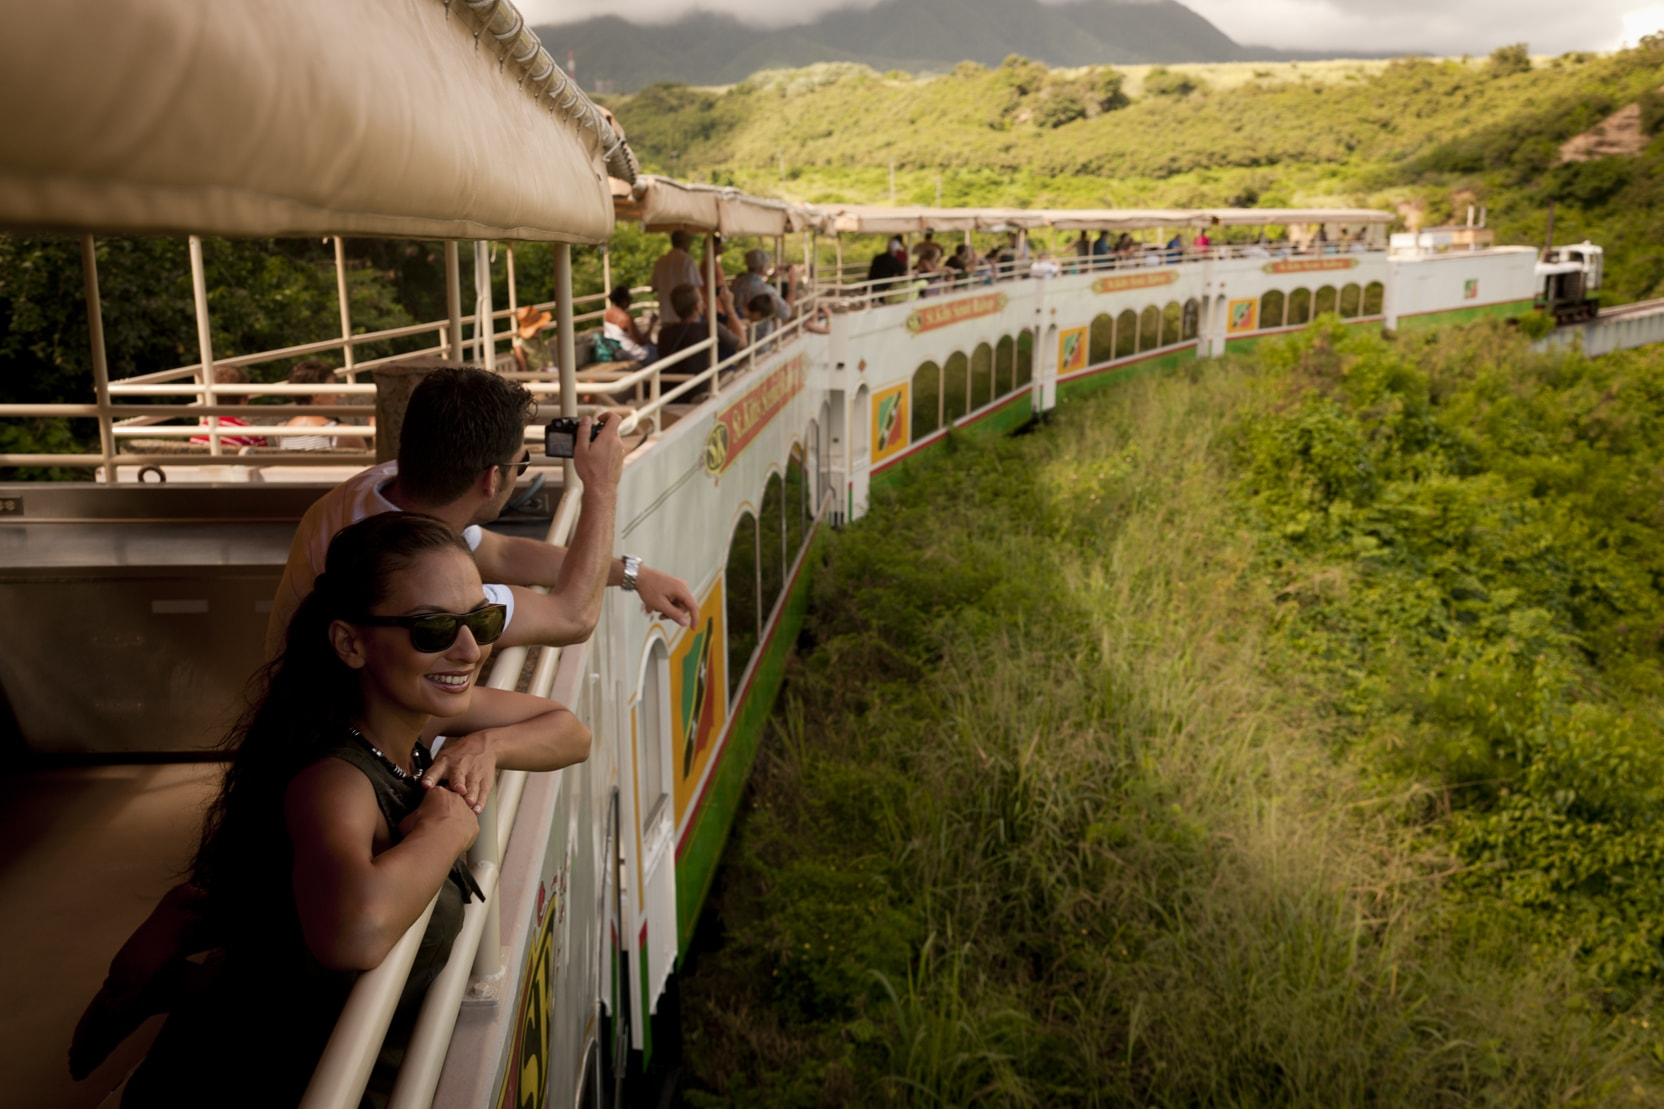 The St. Kitts Scenic Railway runs along the coast on tracks that once carried sugar cane to the mills.